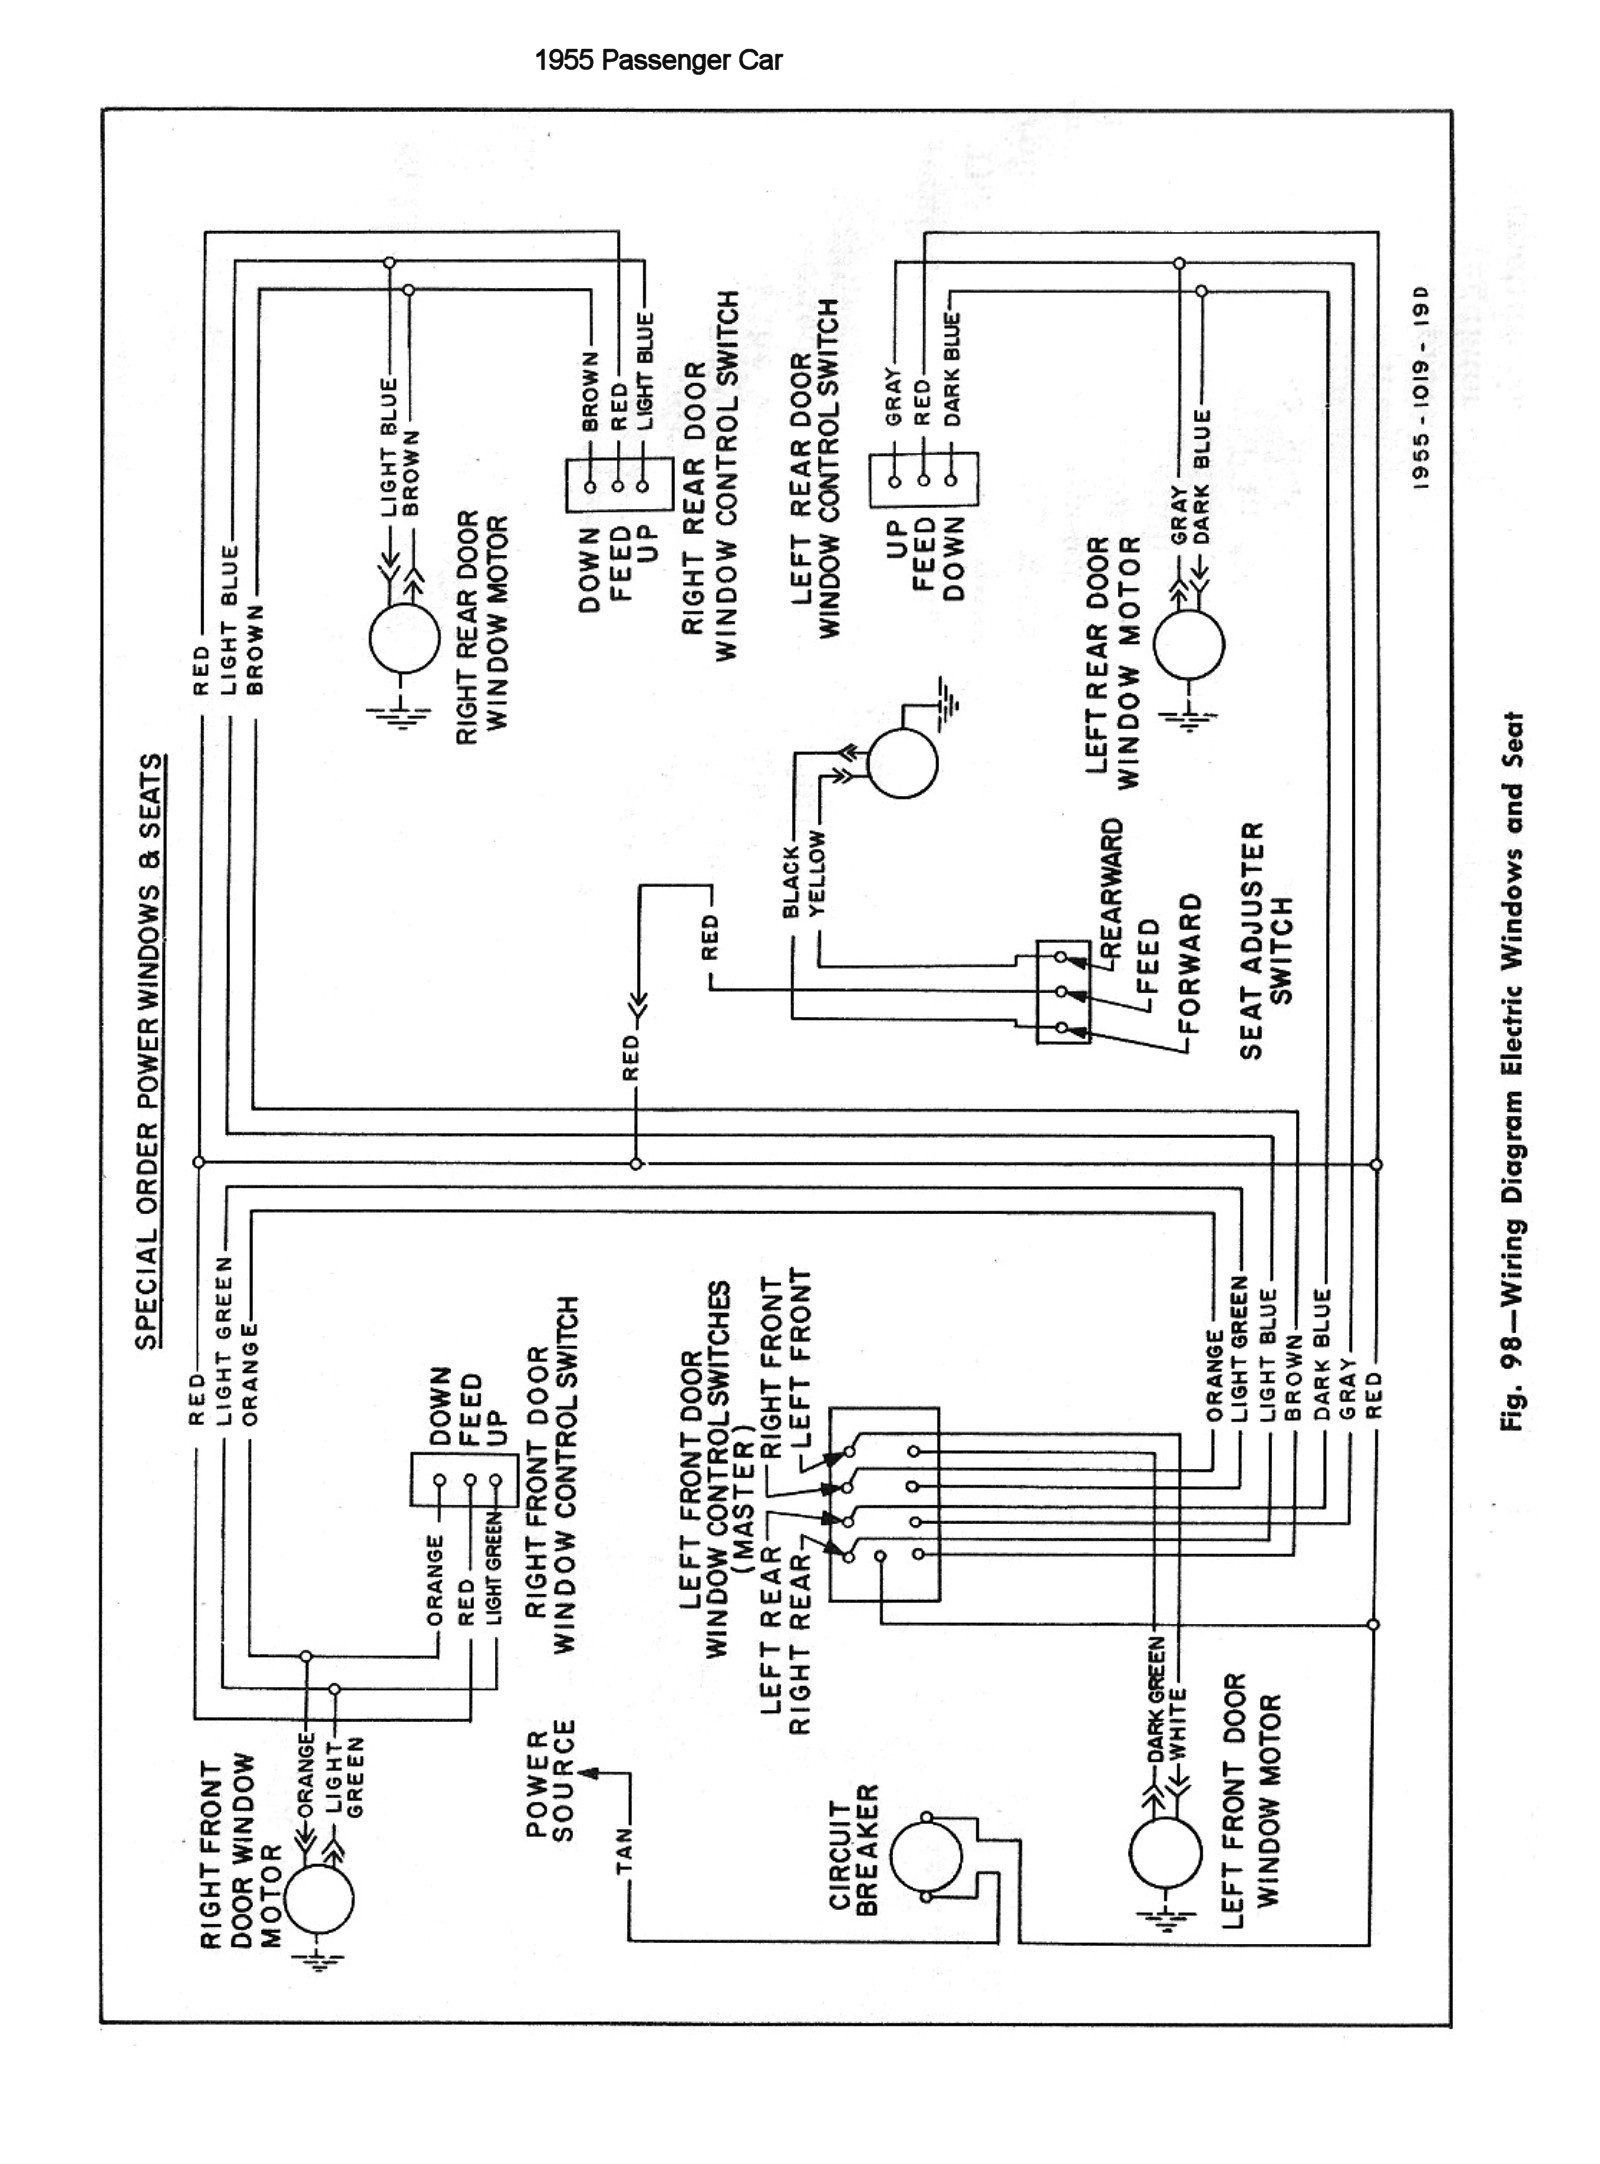 53 chevy truck light wire diagram 2005 chevy truck radio wire harness 1955 chevy turn signal wiring diagram | wiringdiagram.org ...